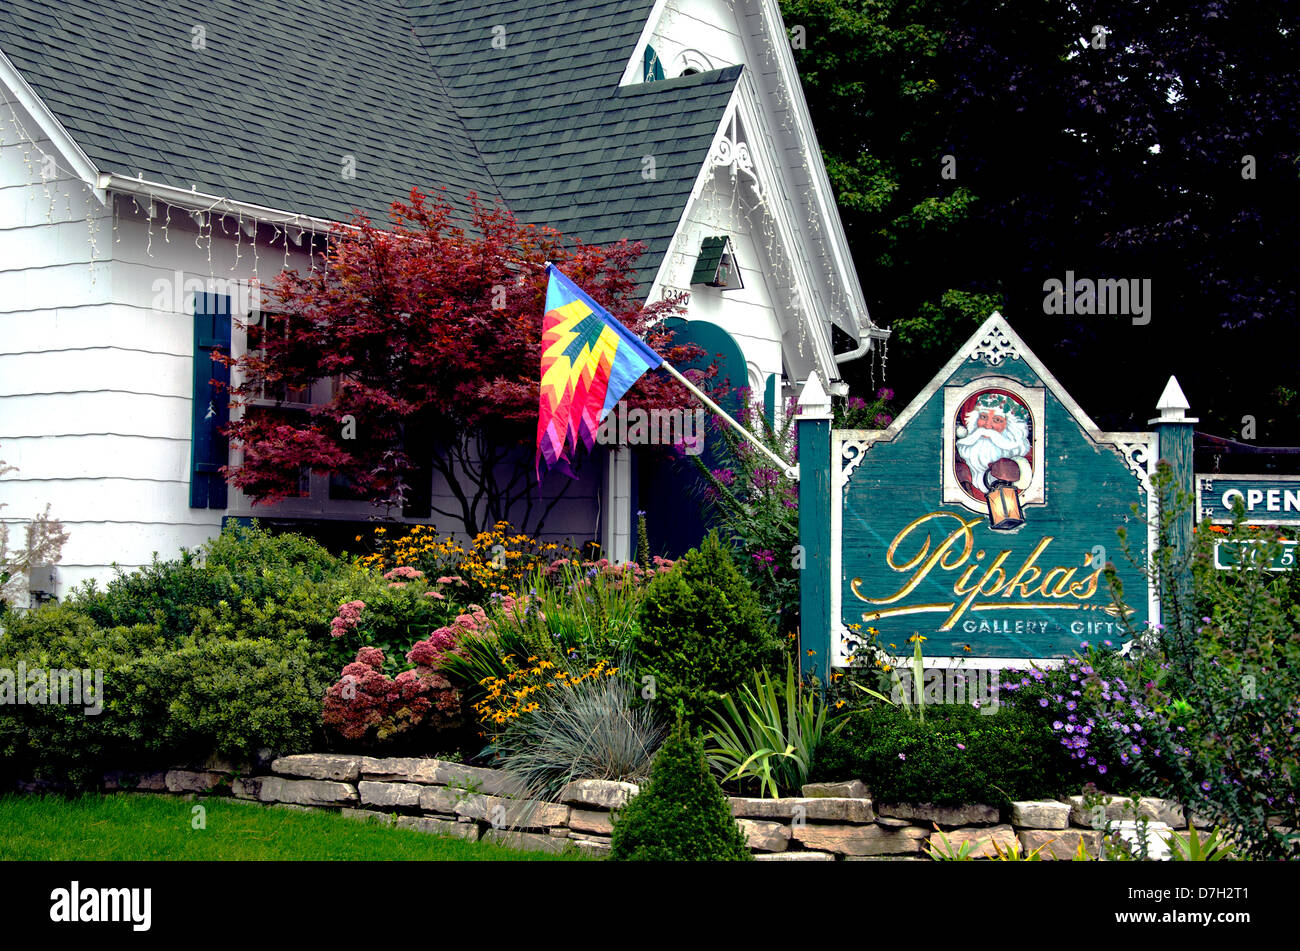 Pipka's  art gallery and gift shop in the  Door County  town of Sister Bay Wisconsin - Stock Image